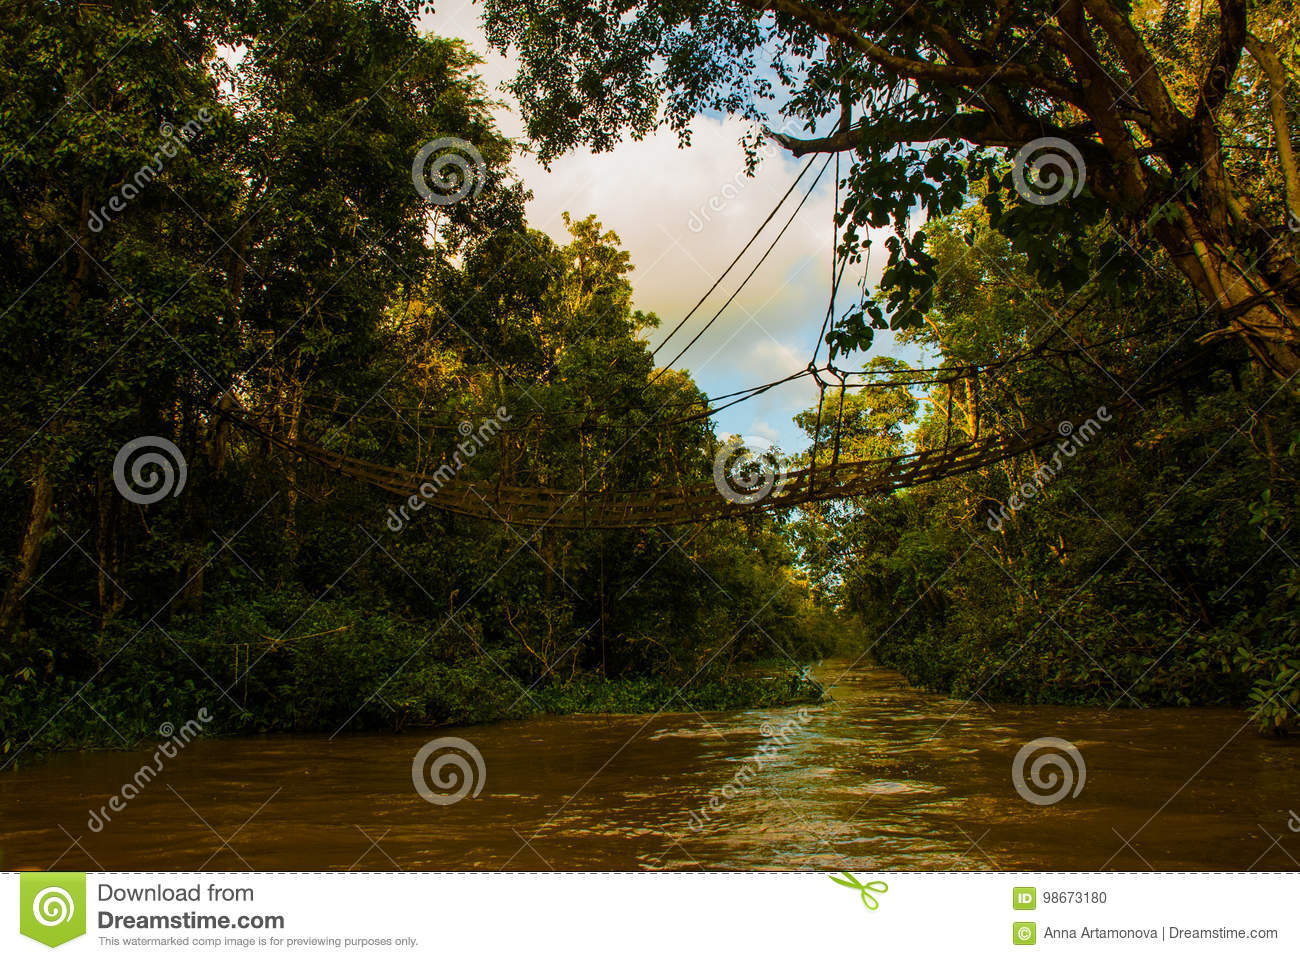 Evening Landscape Of Forests And Mesh  Kinabatangan River     Download Evening Landscape Of Forests And Mesh  Kinabatangan River   Rainforest Of Borneo Island